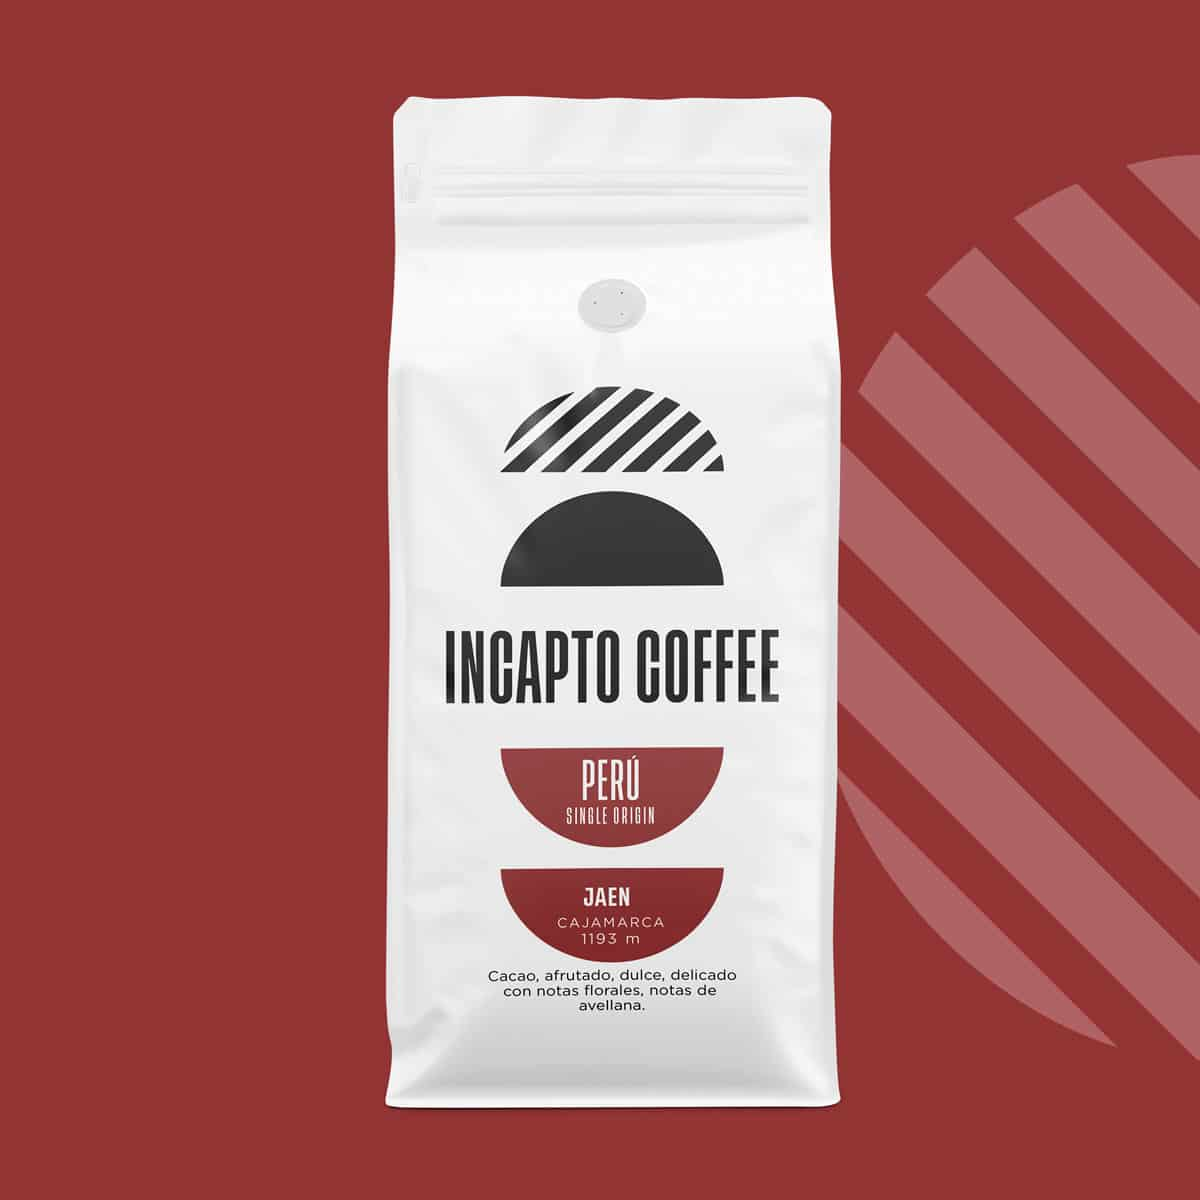 Incapto Coffee Perú Jaén Cajamarca